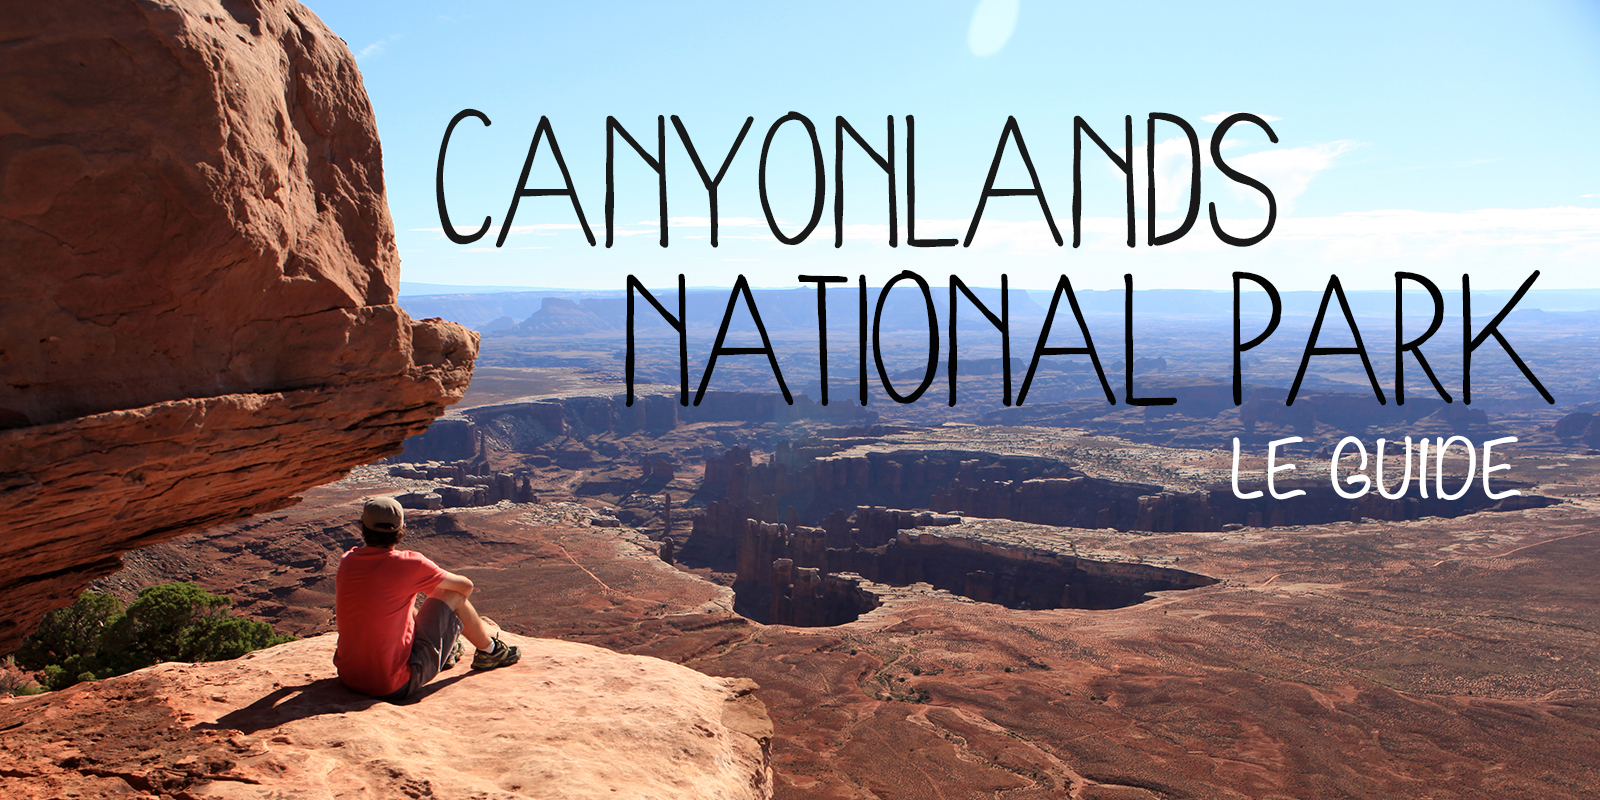 Guide Canyonlands